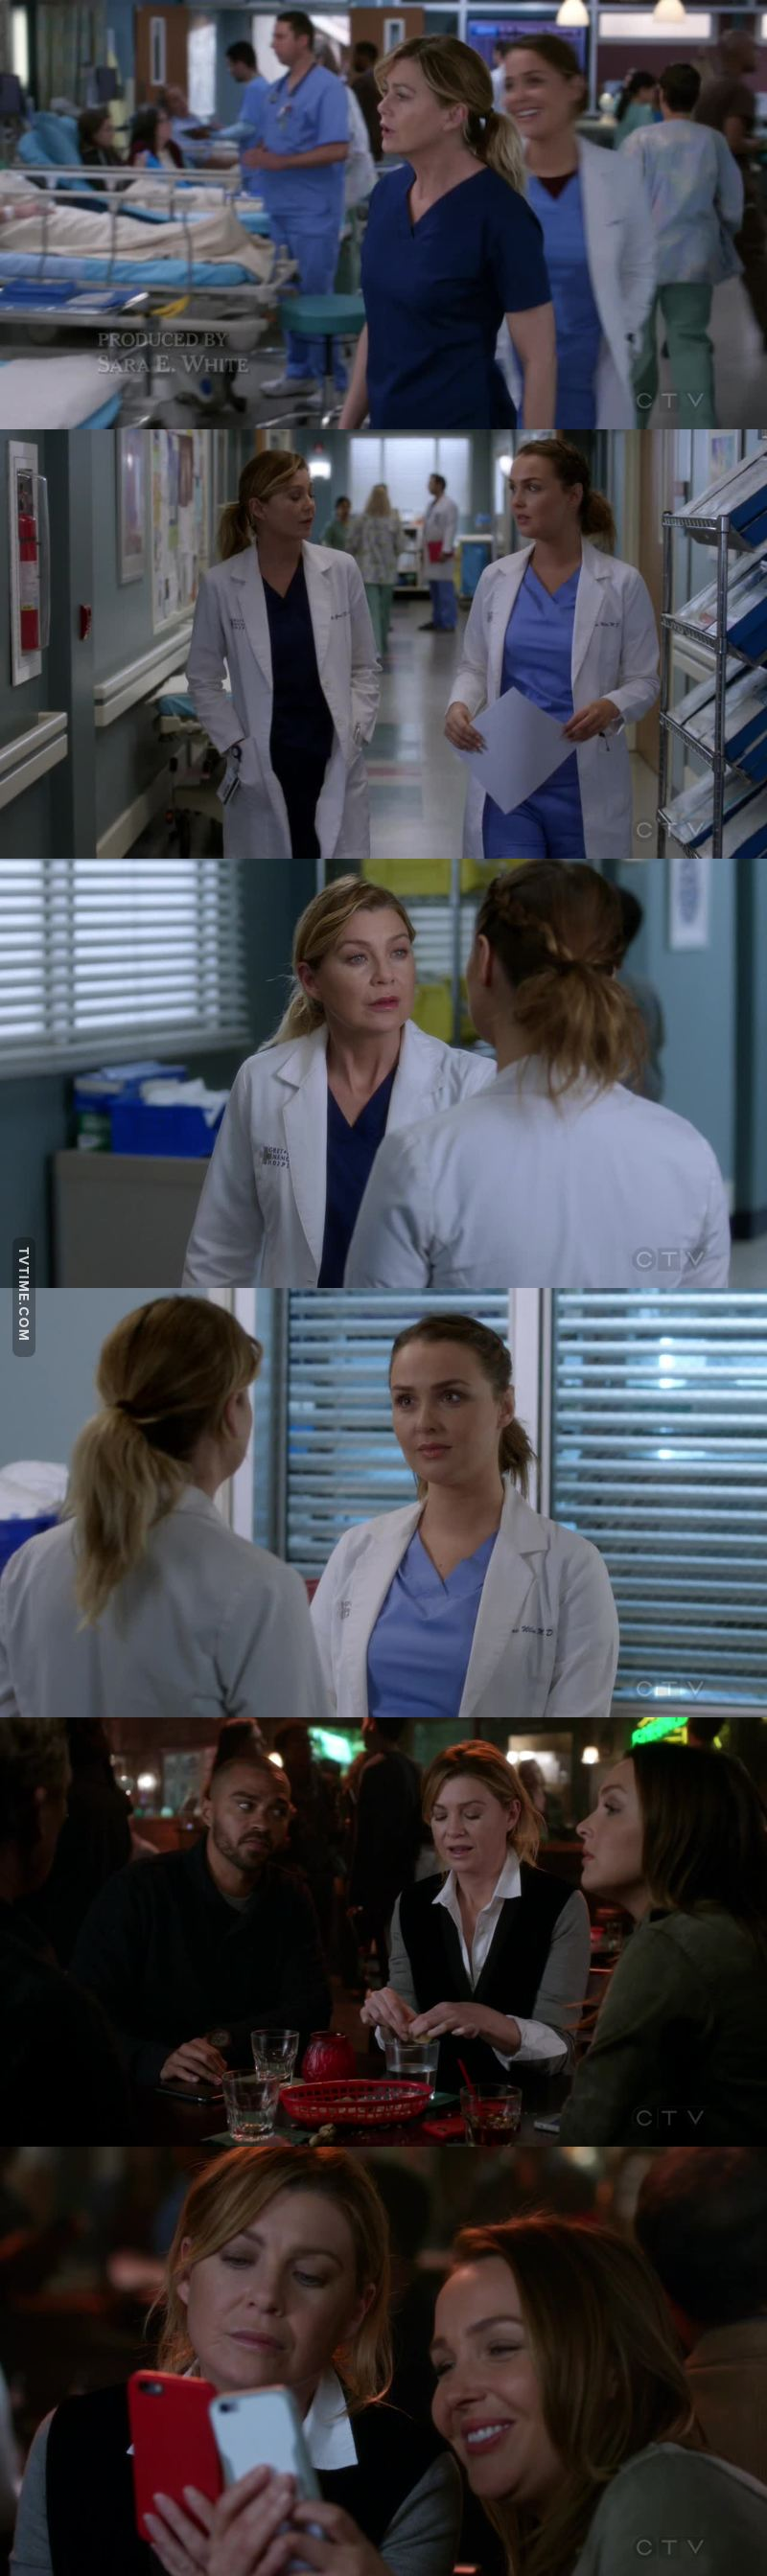 So great to see Mer & Jo together 🙌🏽